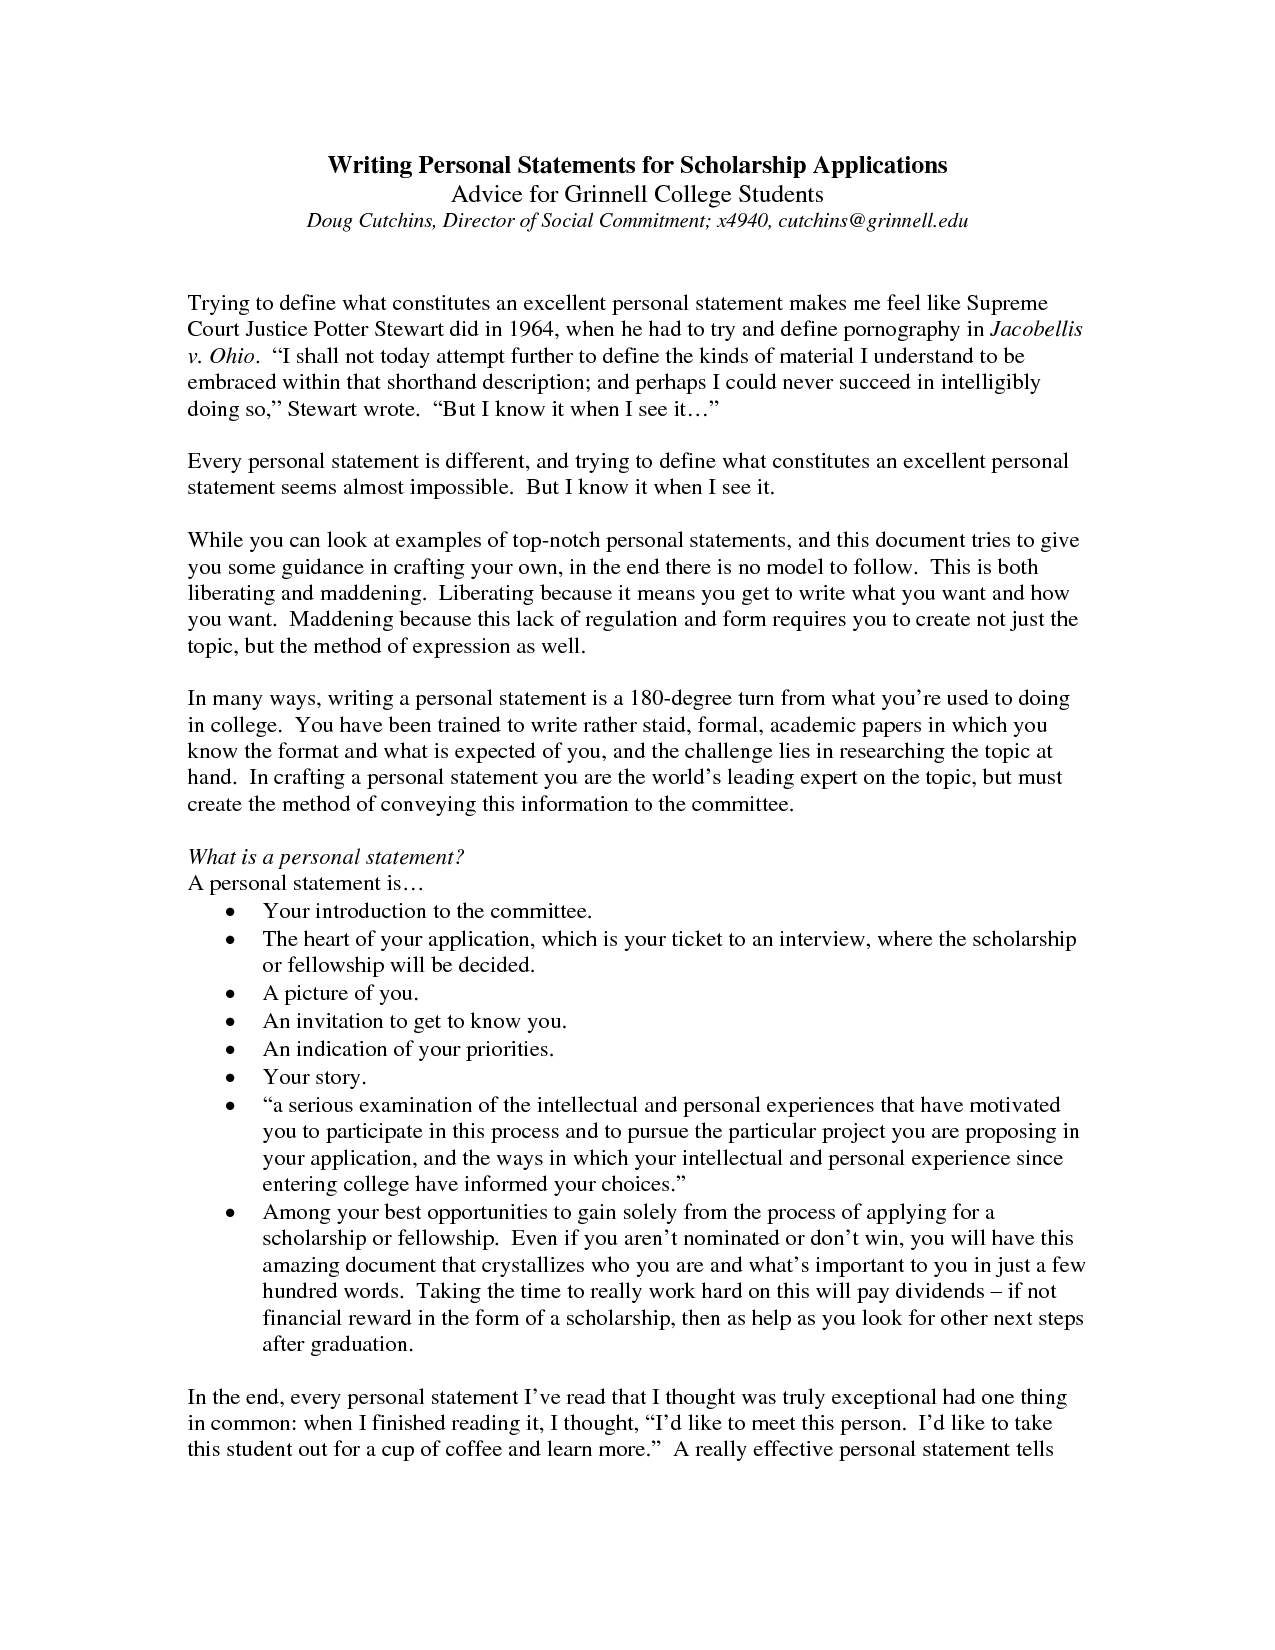 004 College Personal Statement Essays Marvelous Essay Examples Full